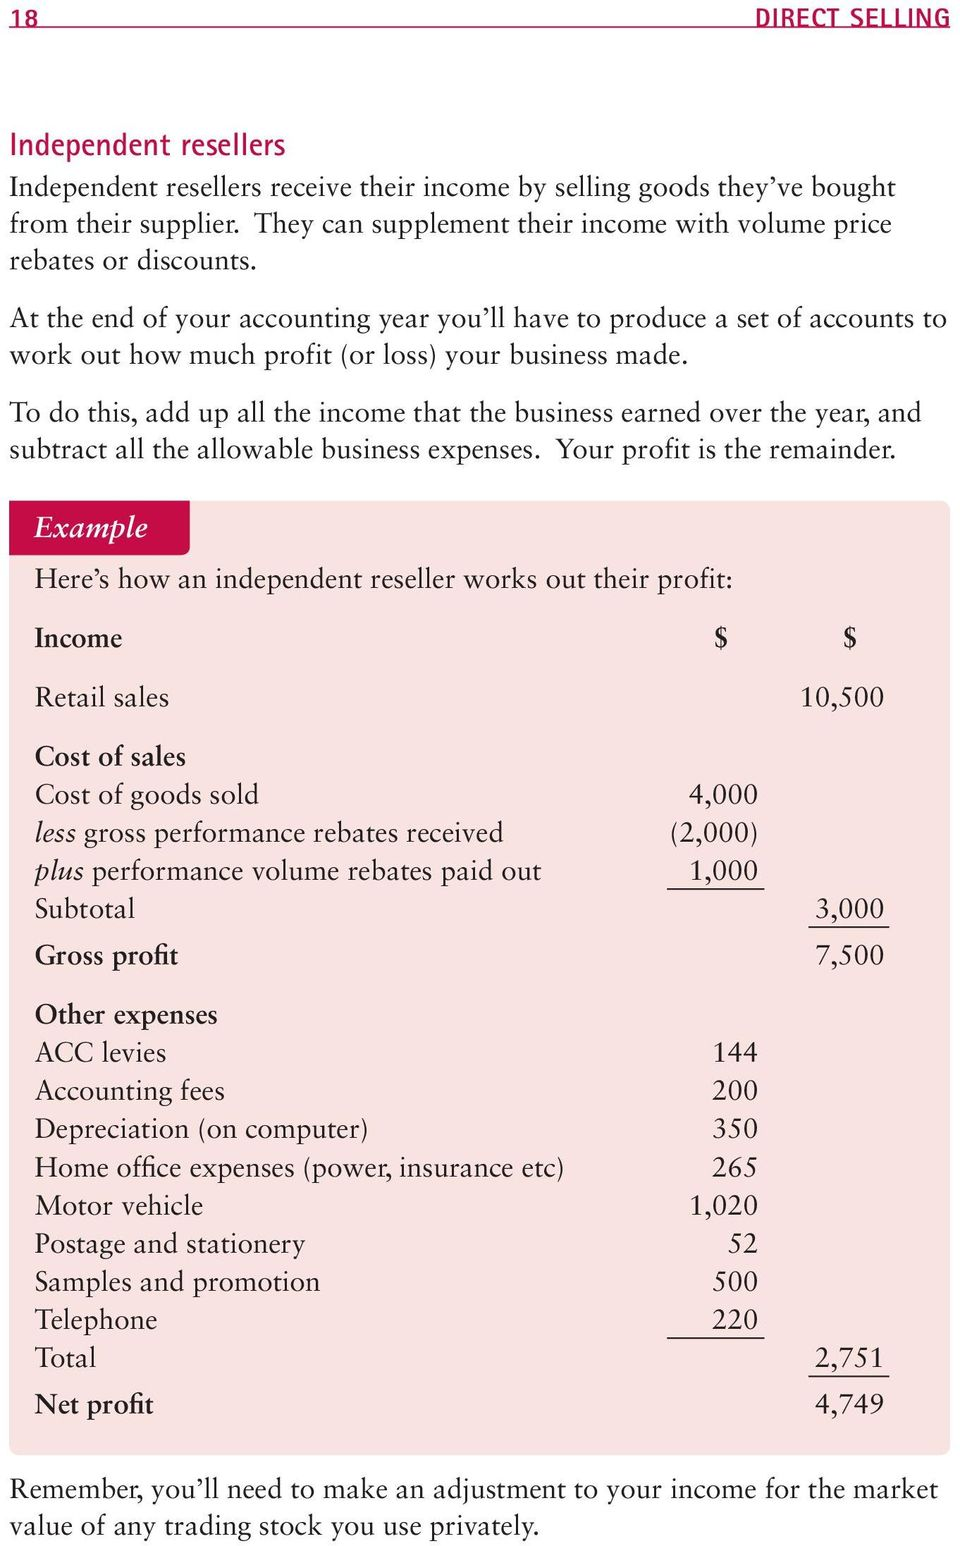 At the end of your accounting year you ll have to produce a set of accounts to work out how much profit (or loss) your business made.